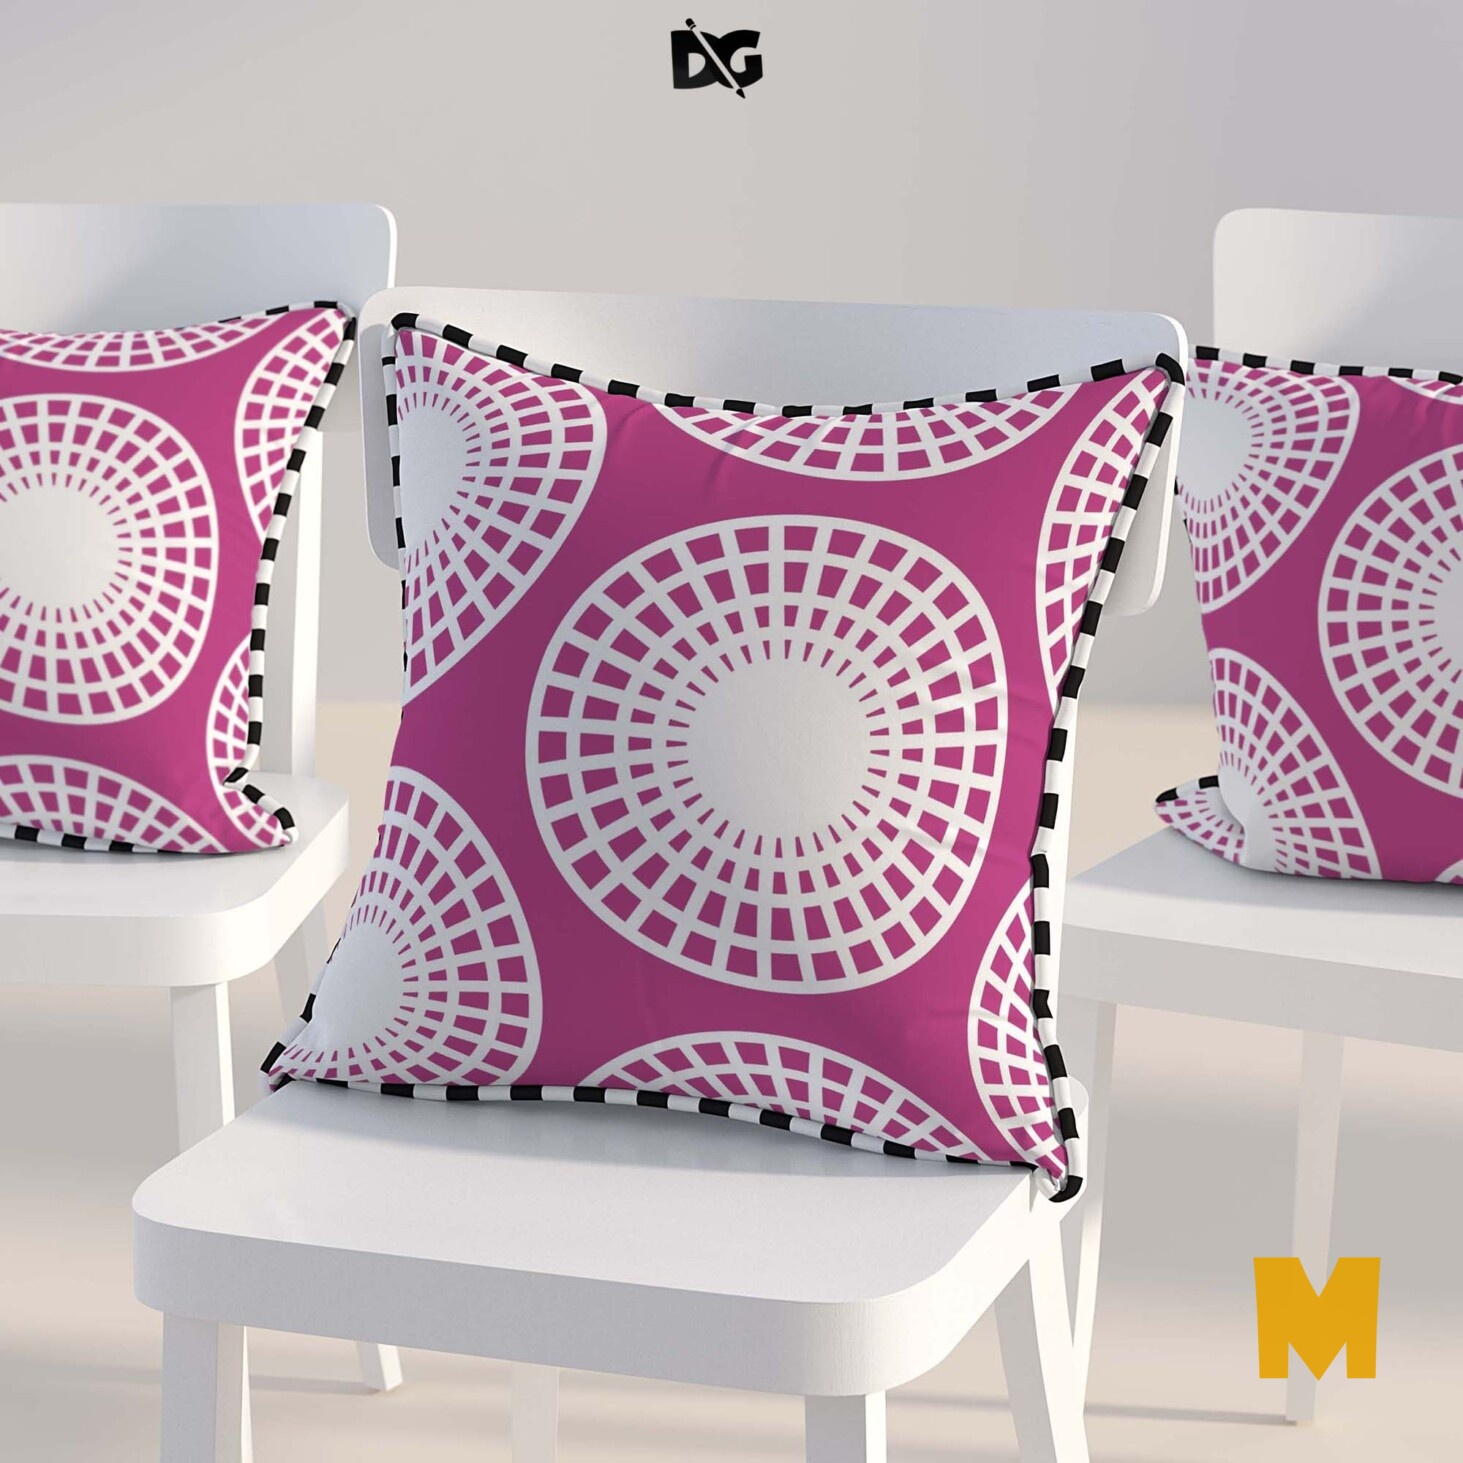 Pillow Design Mockup